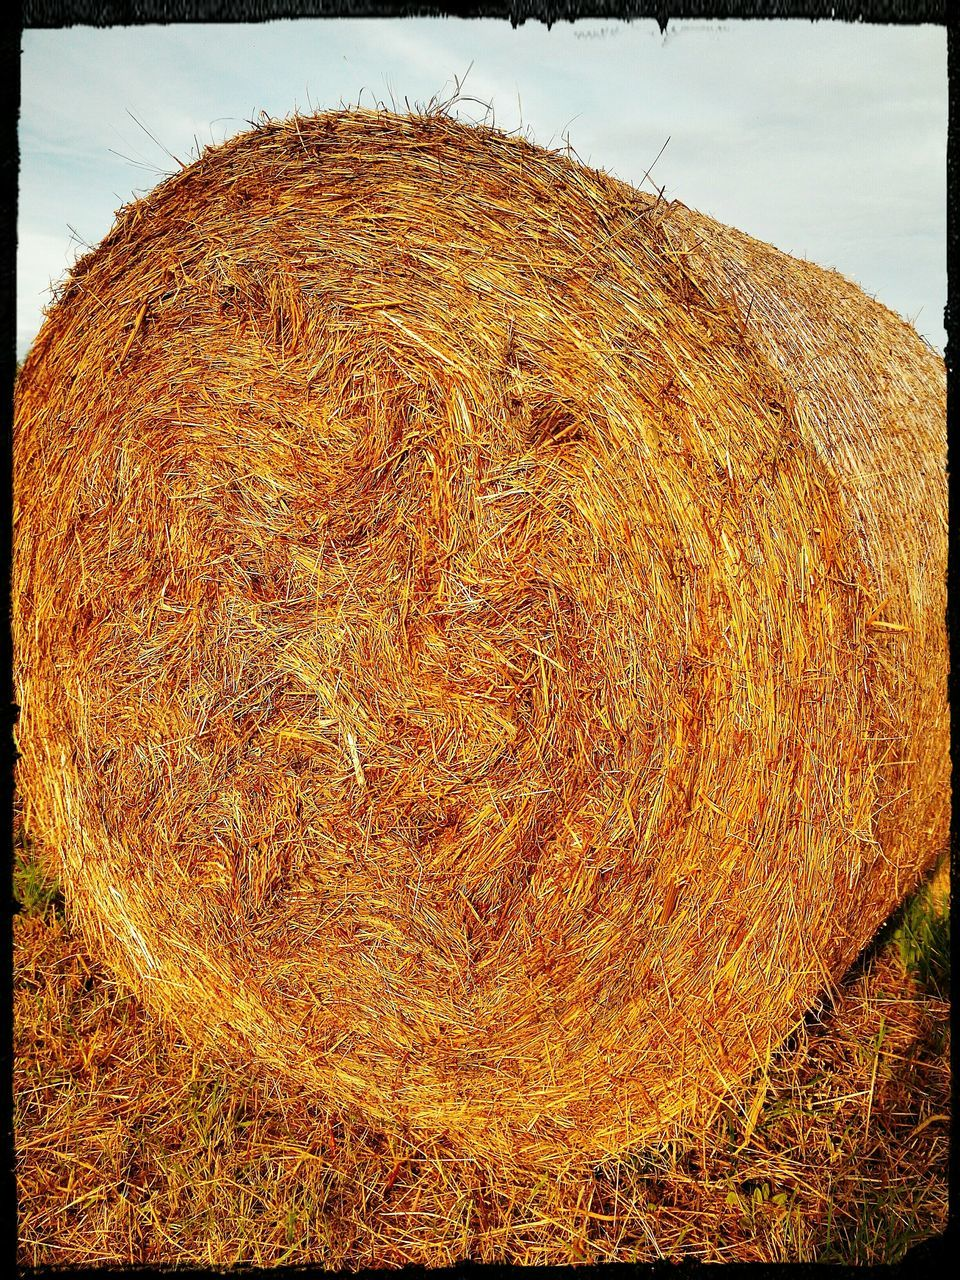 hay, bale, hay bale, field, rolled up, outdoors, landscape, agriculture, grass, day, straw, no people, nature, haystack, rural scene, sky, close-up